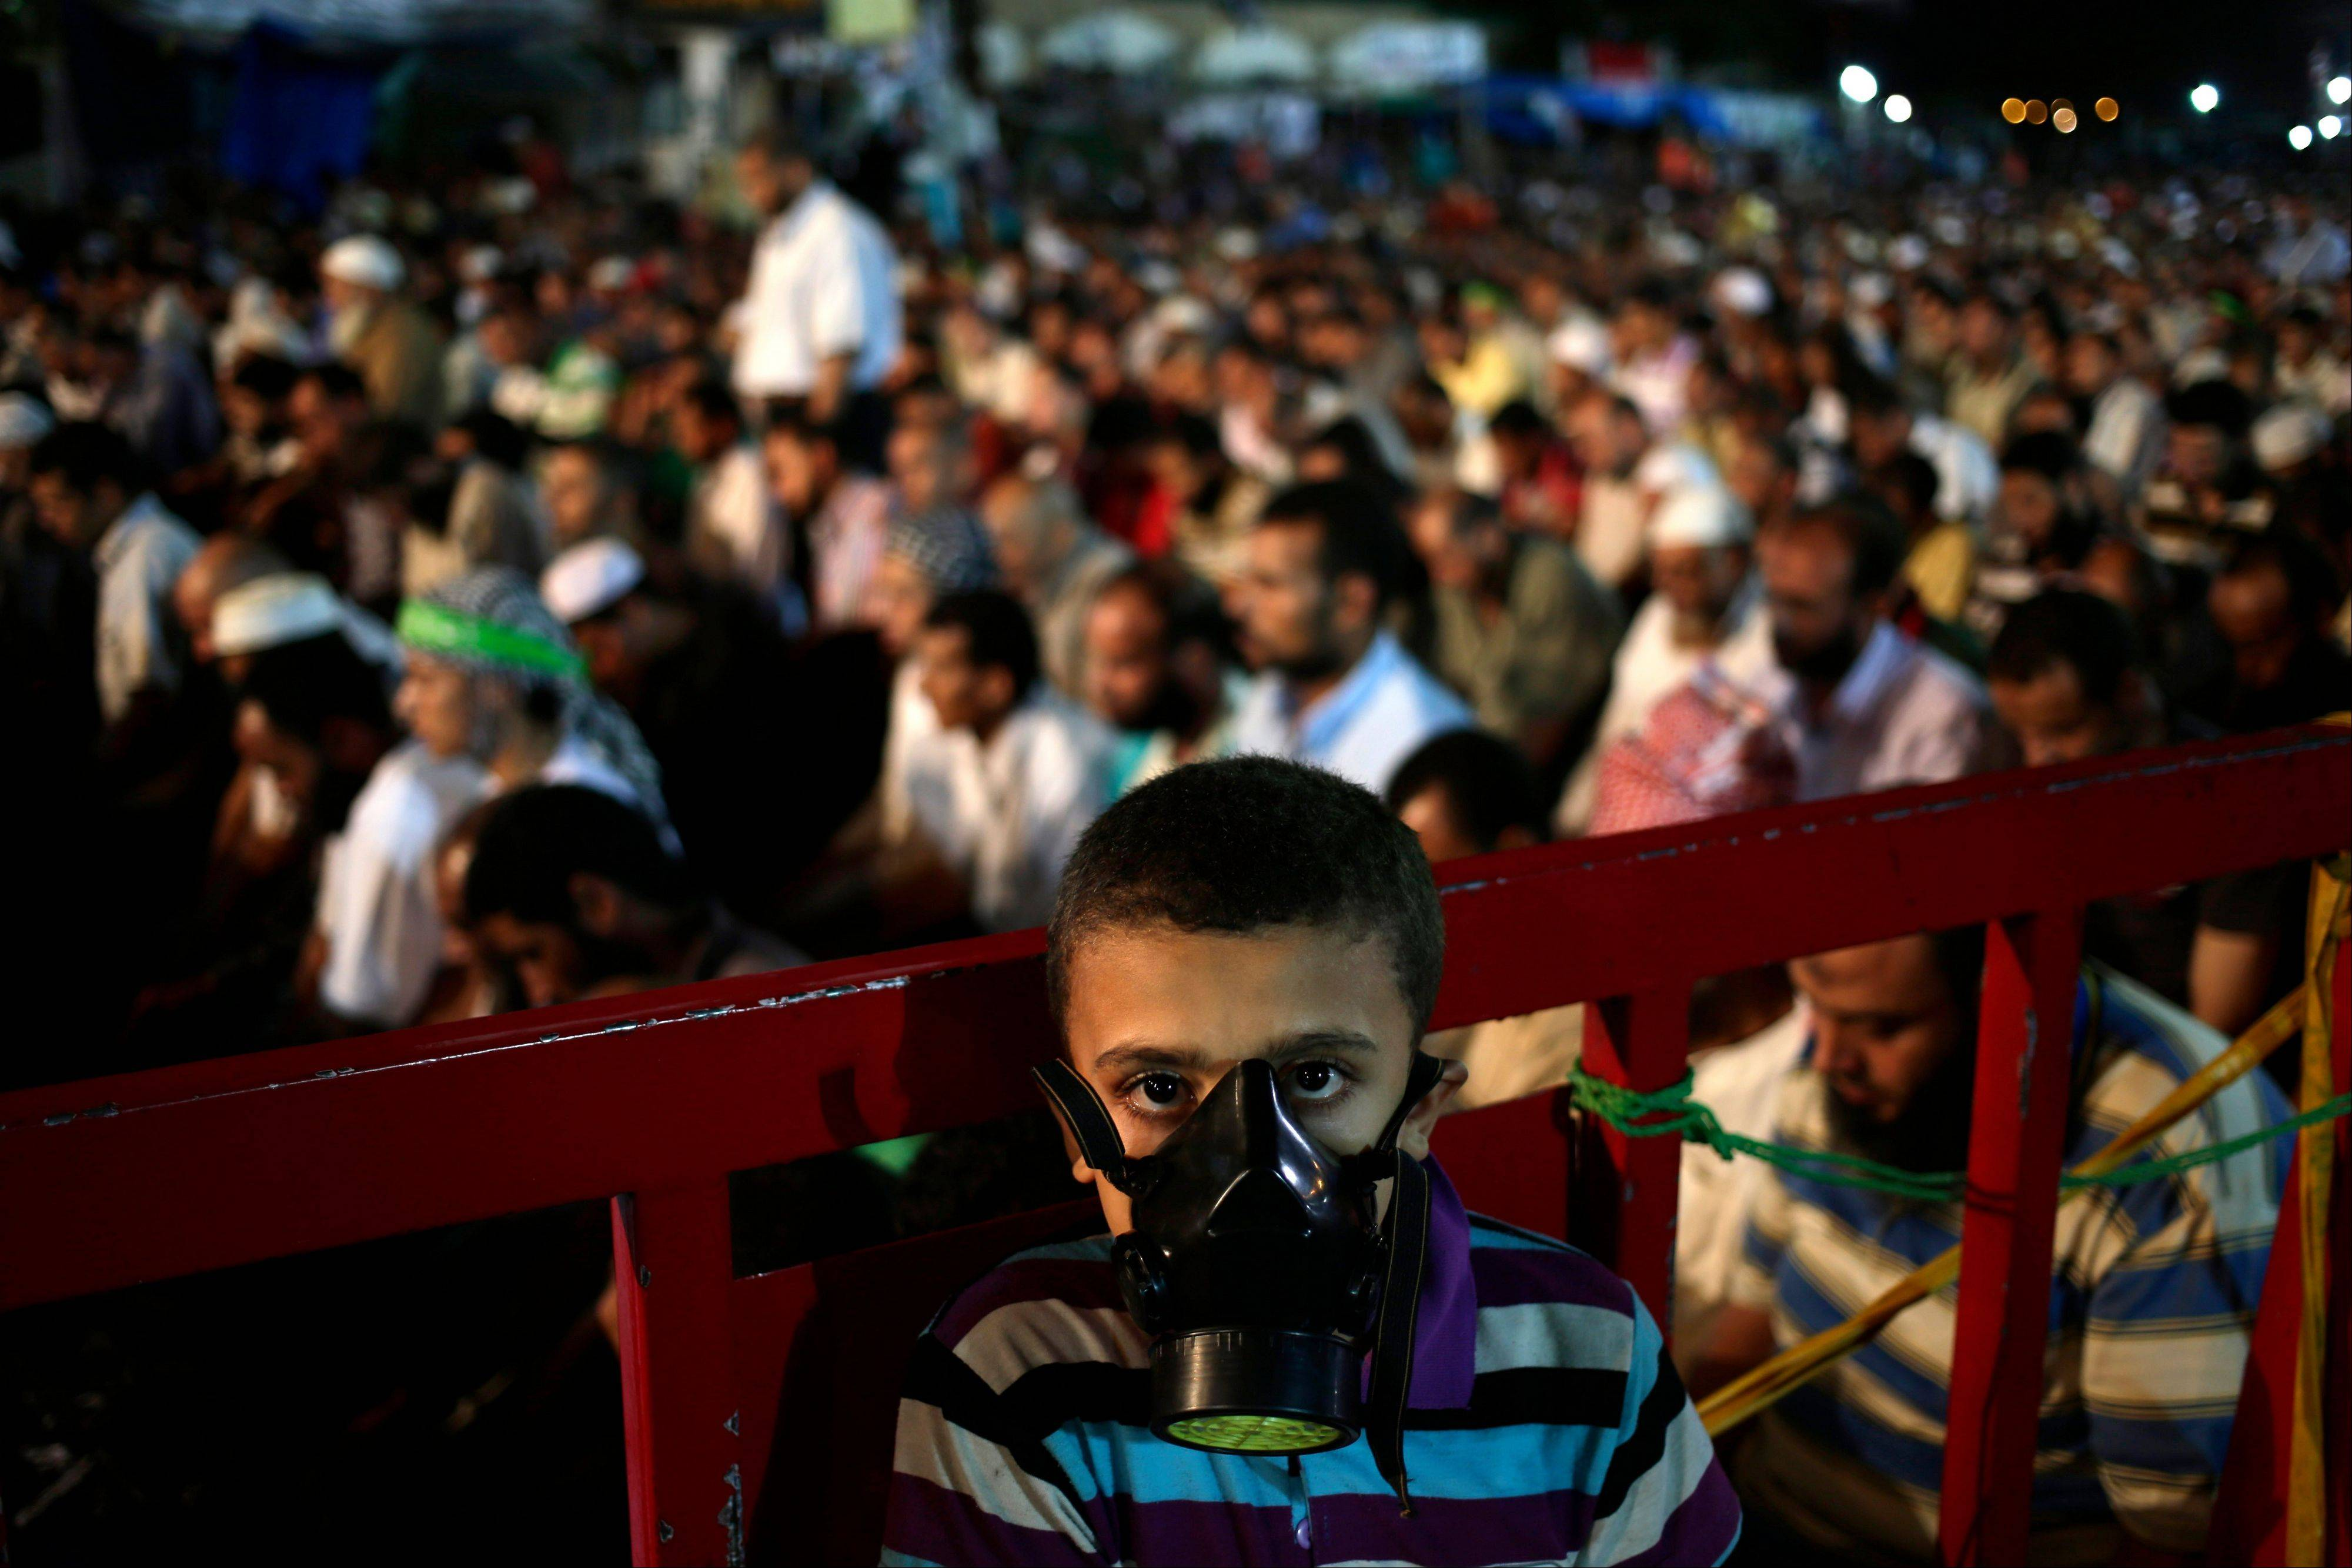 A boy wears a tear gas mask as supporters of Egypt's ousted President Mohammed Morsi pray at Nasr City, where protesters have installed a camp and hold daily rallies, in Cairo, Egypt, Sunday.